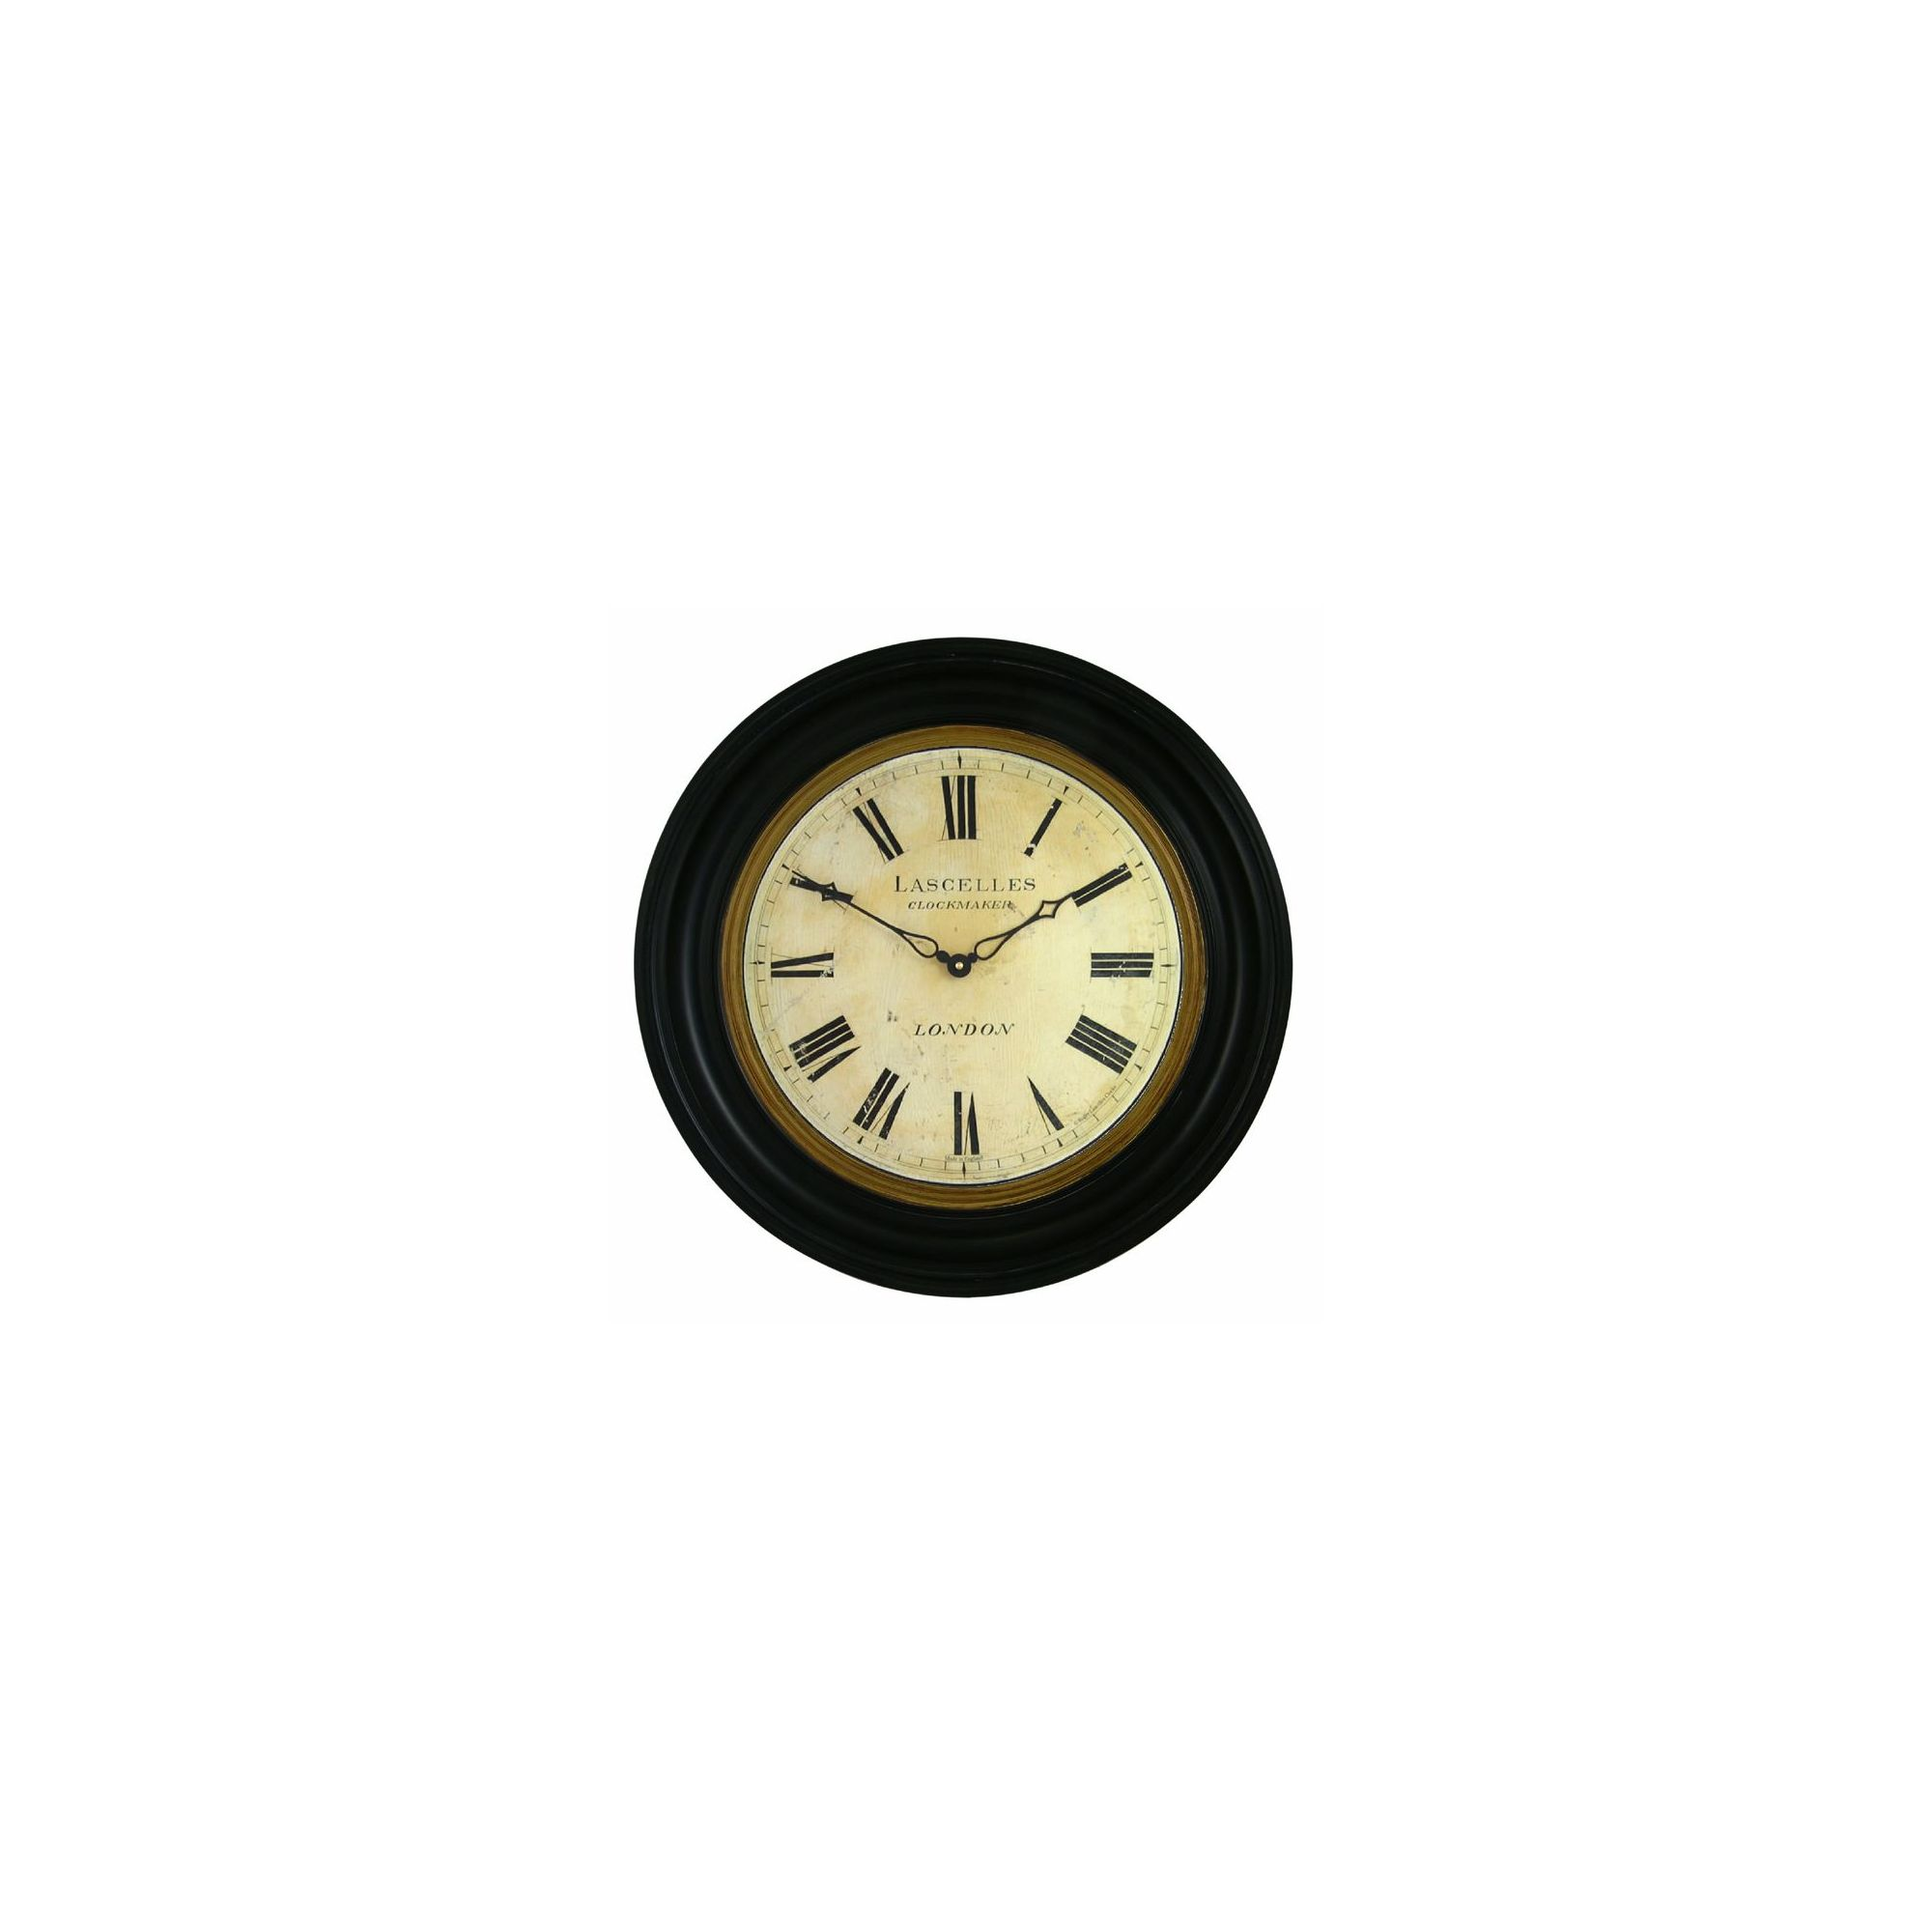 Roger lascelles wall clocks gallery home wall decoration ideas tesco wall clocks image collections home wall decoration ideas roger lascelles wall clocks images home wall amipublicfo Image collections